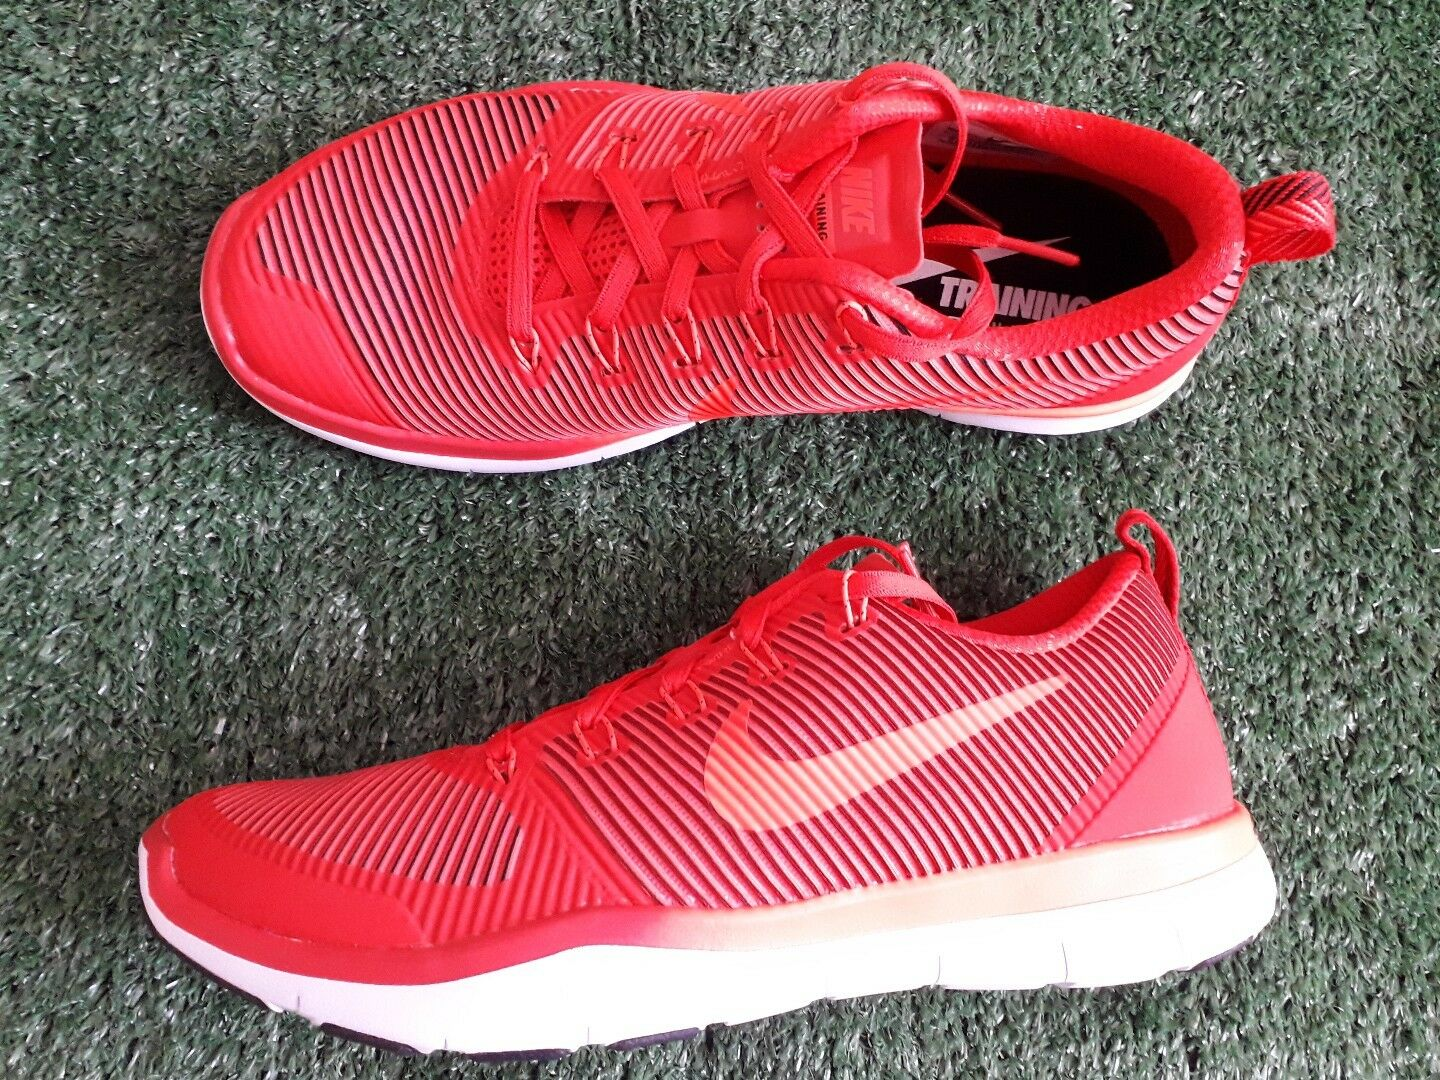 Nike Free Taille train polyvalence Baskets Homme Chaussures De Course Taille Free Sport Rouge NEUF f2630b